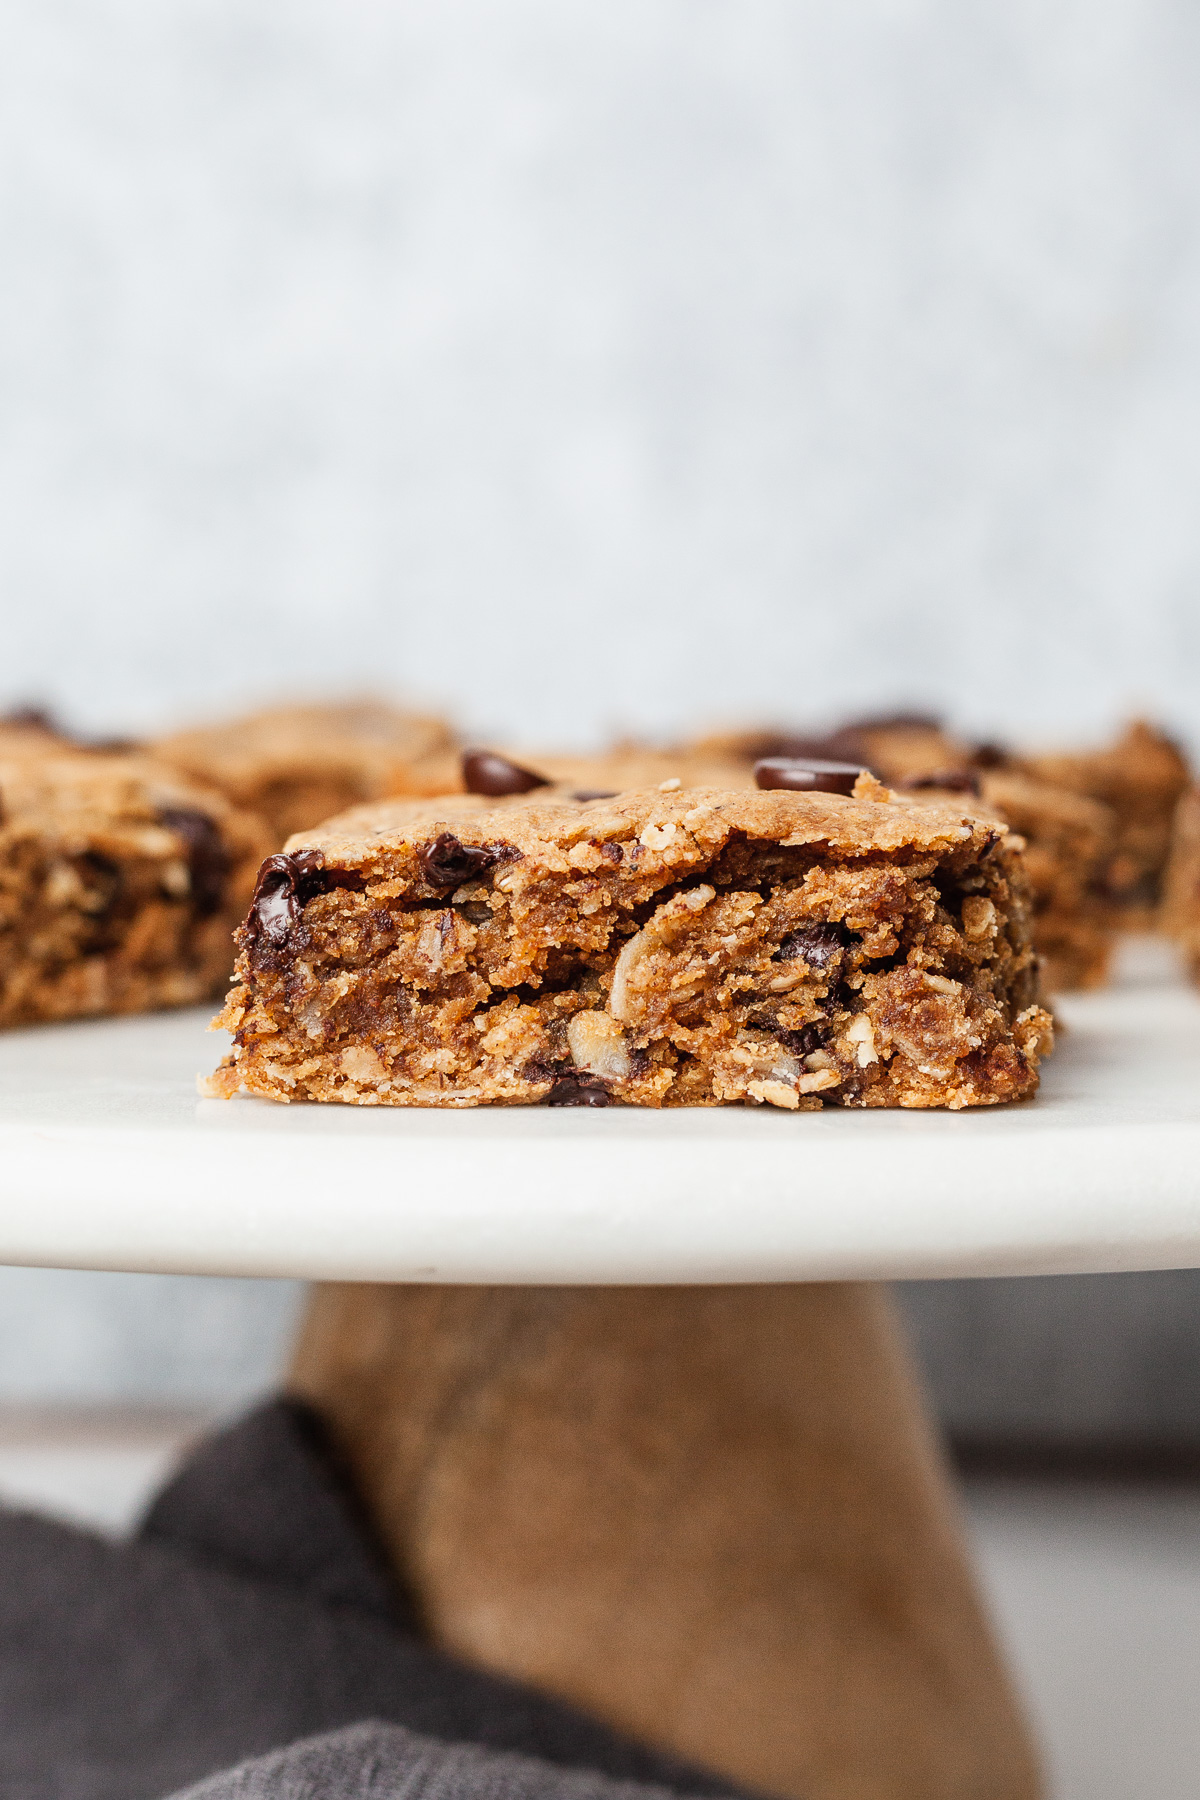 side view image of peanut butter oat bars on cake plate